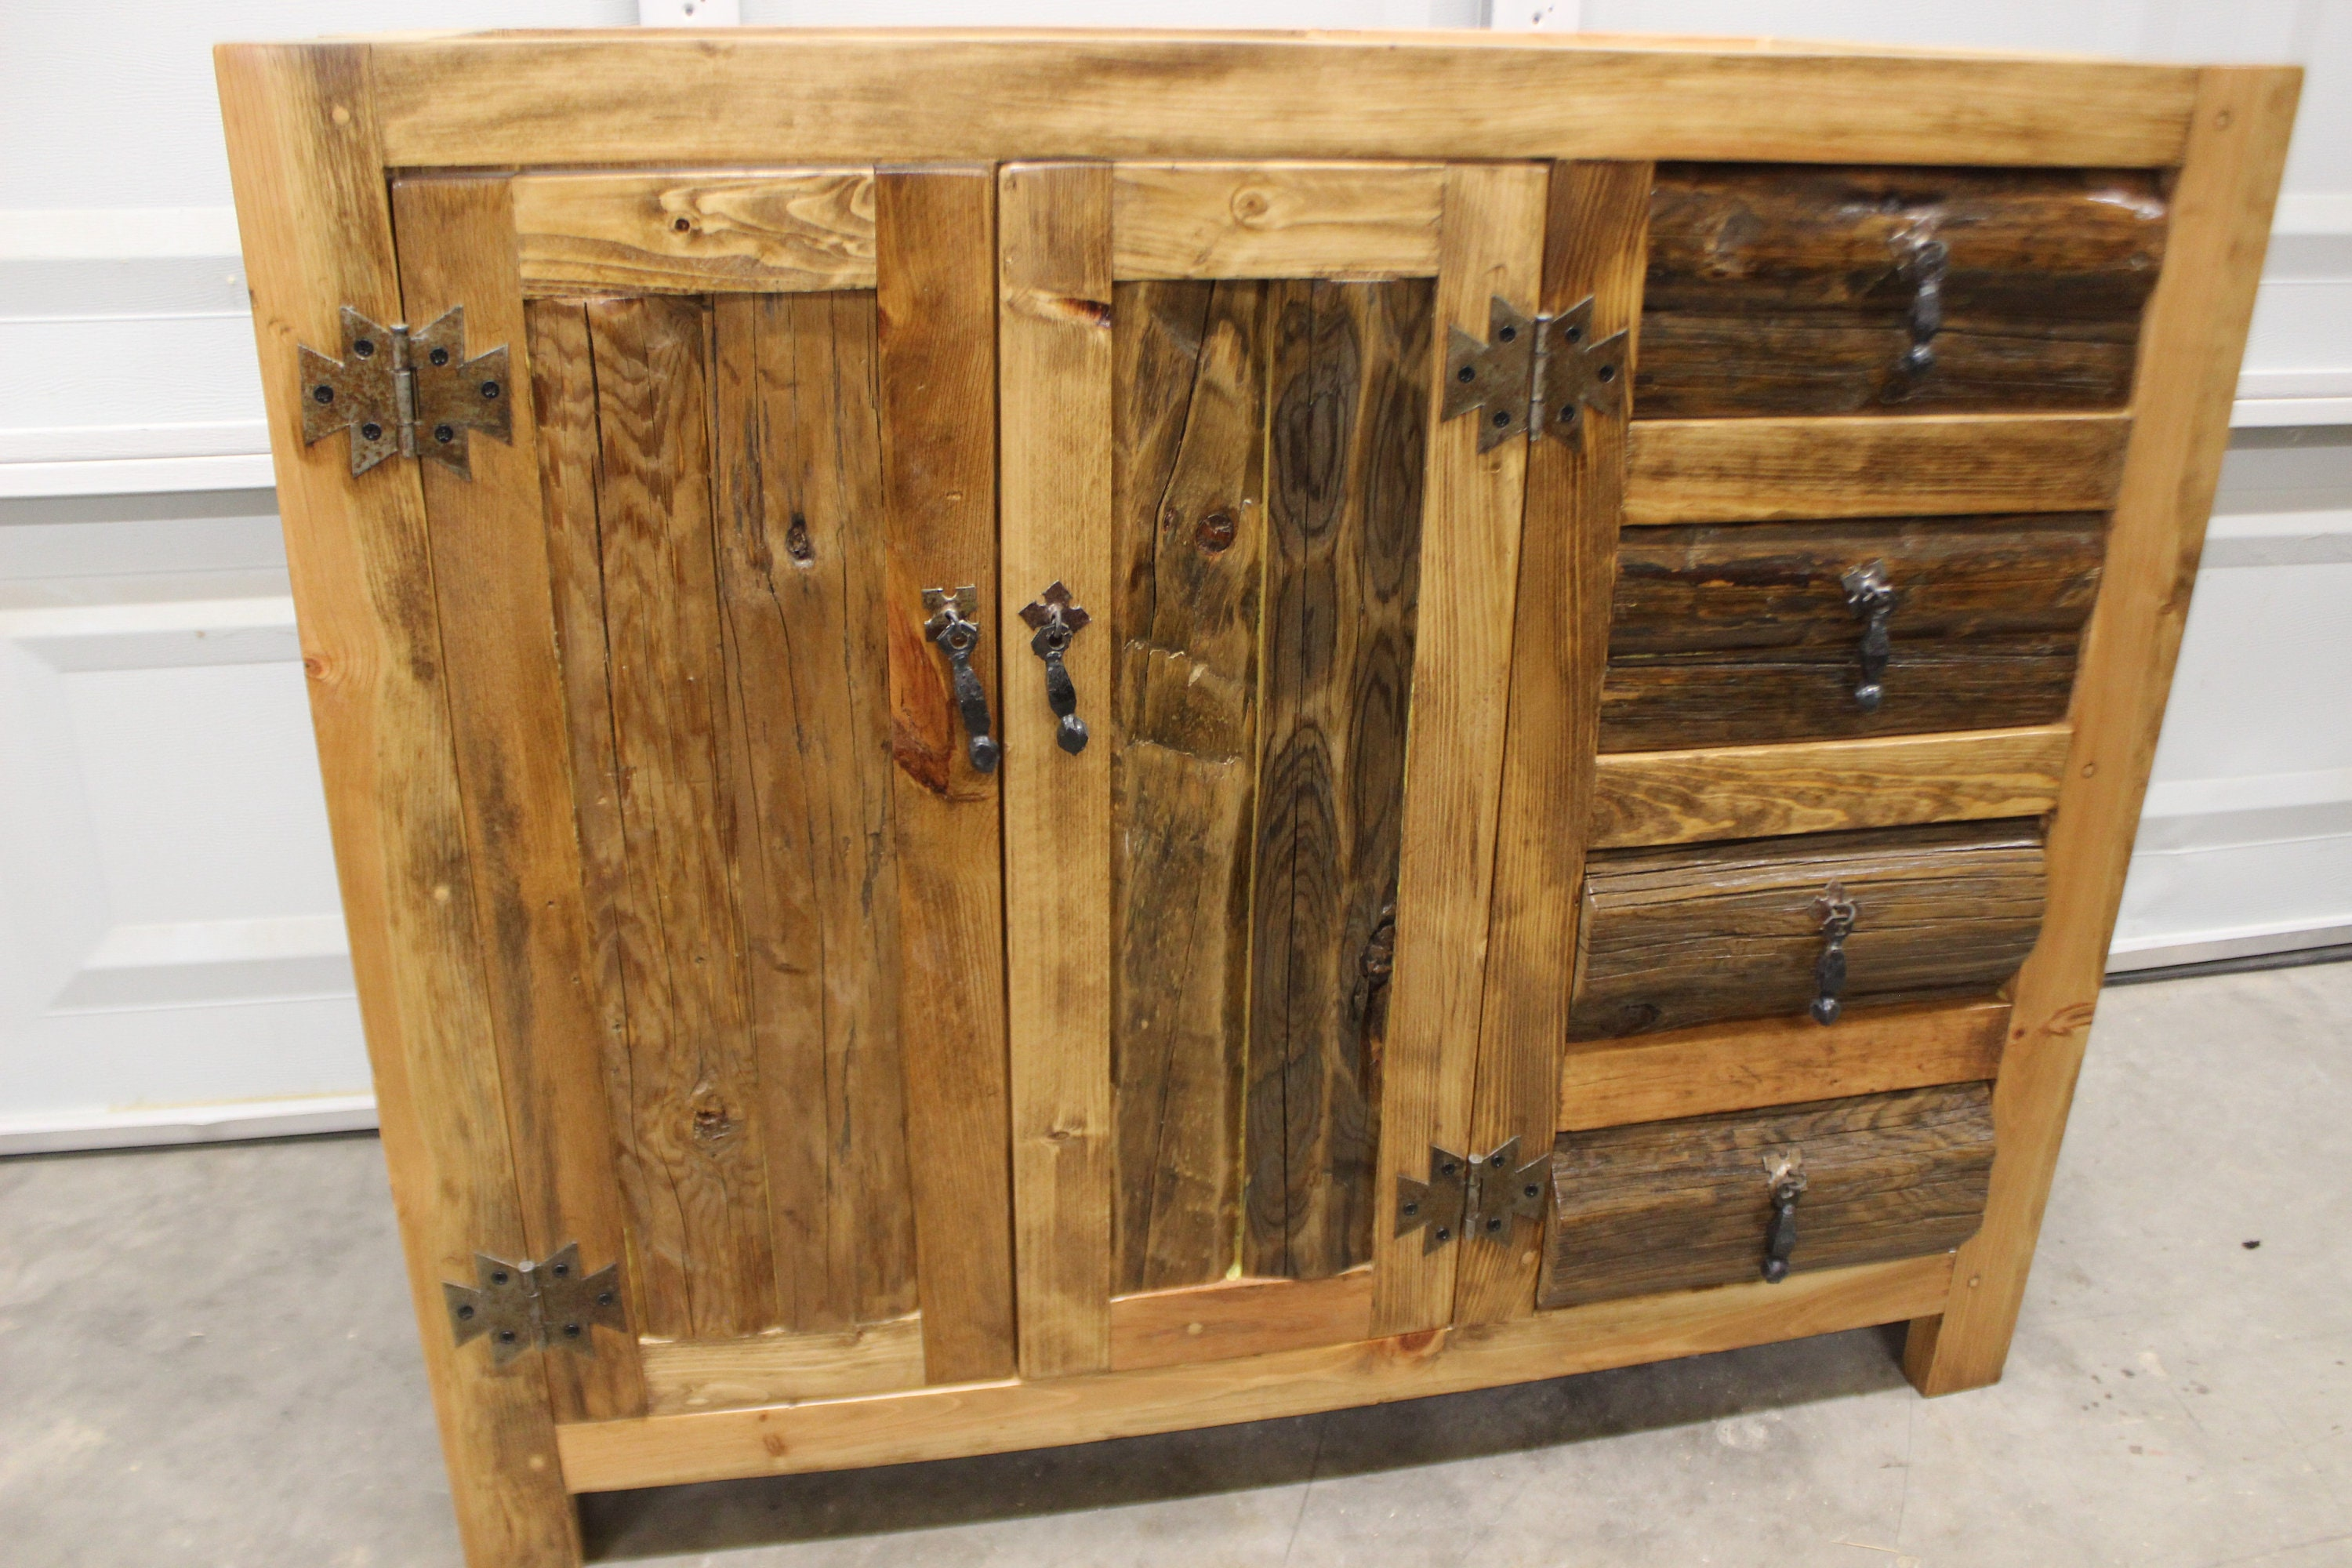 RUSTIC BATHROOM VANITY - Without a Top - 39 wide - Rustic ...